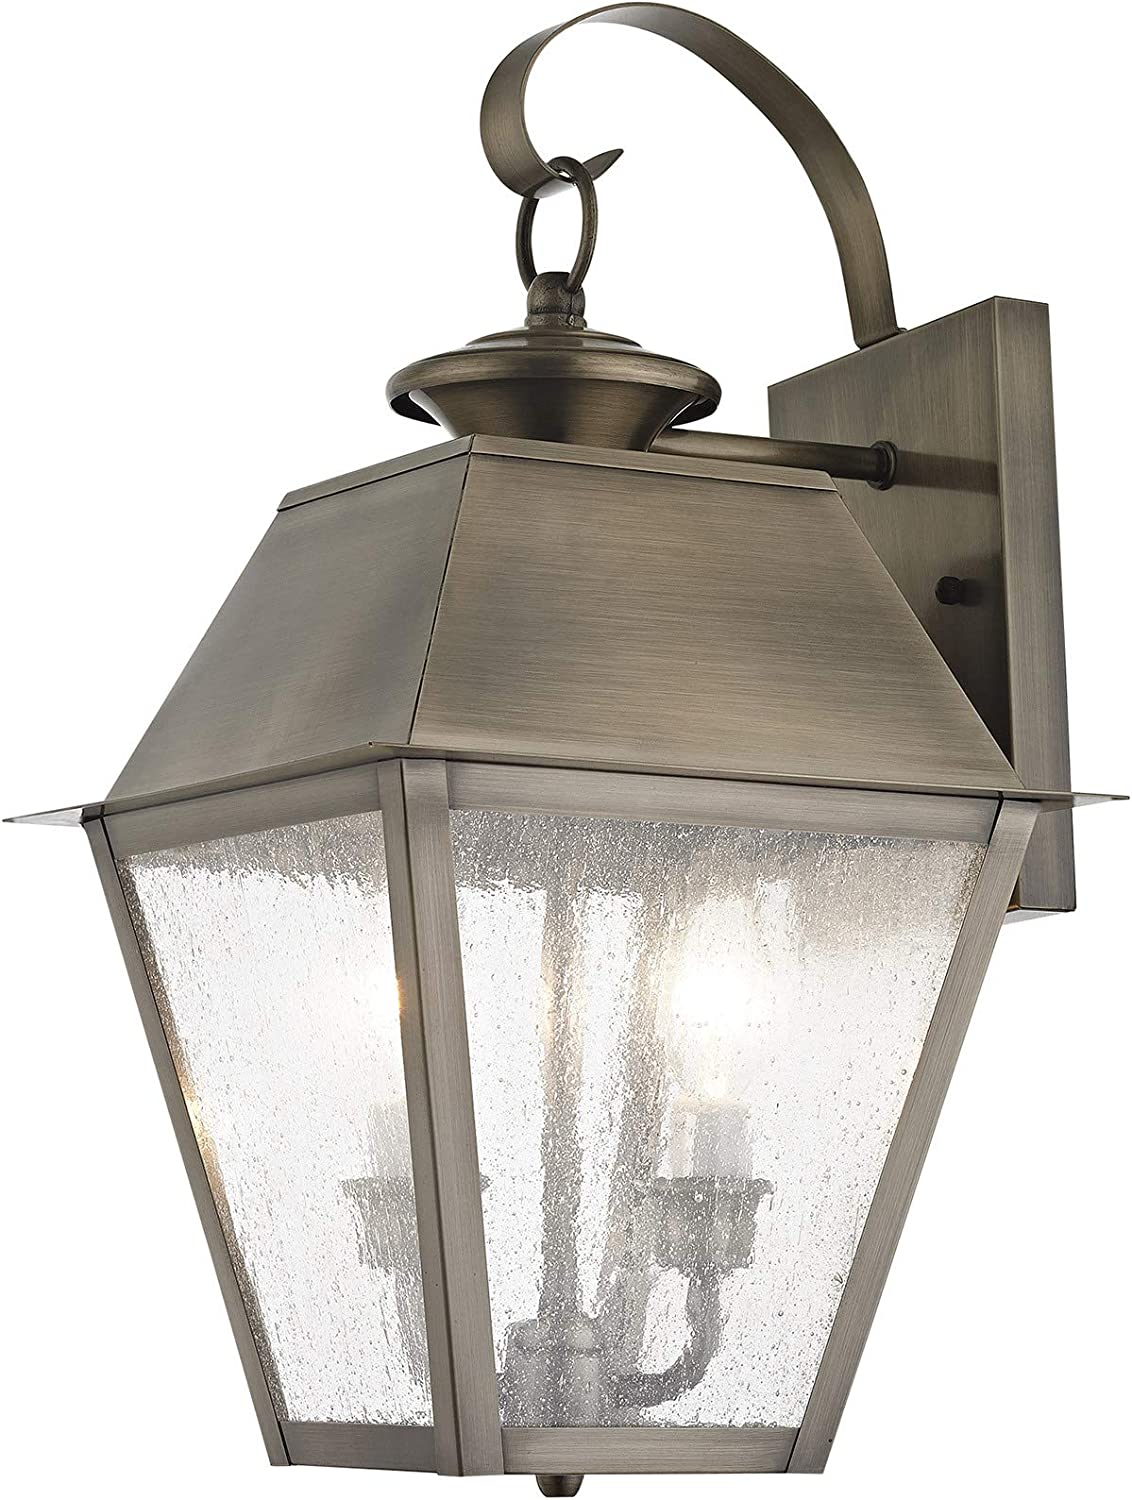 Livex Factory outlet Lighting 2165-29 Transitional Three Light Discount mail order Outdoor Lan Wall